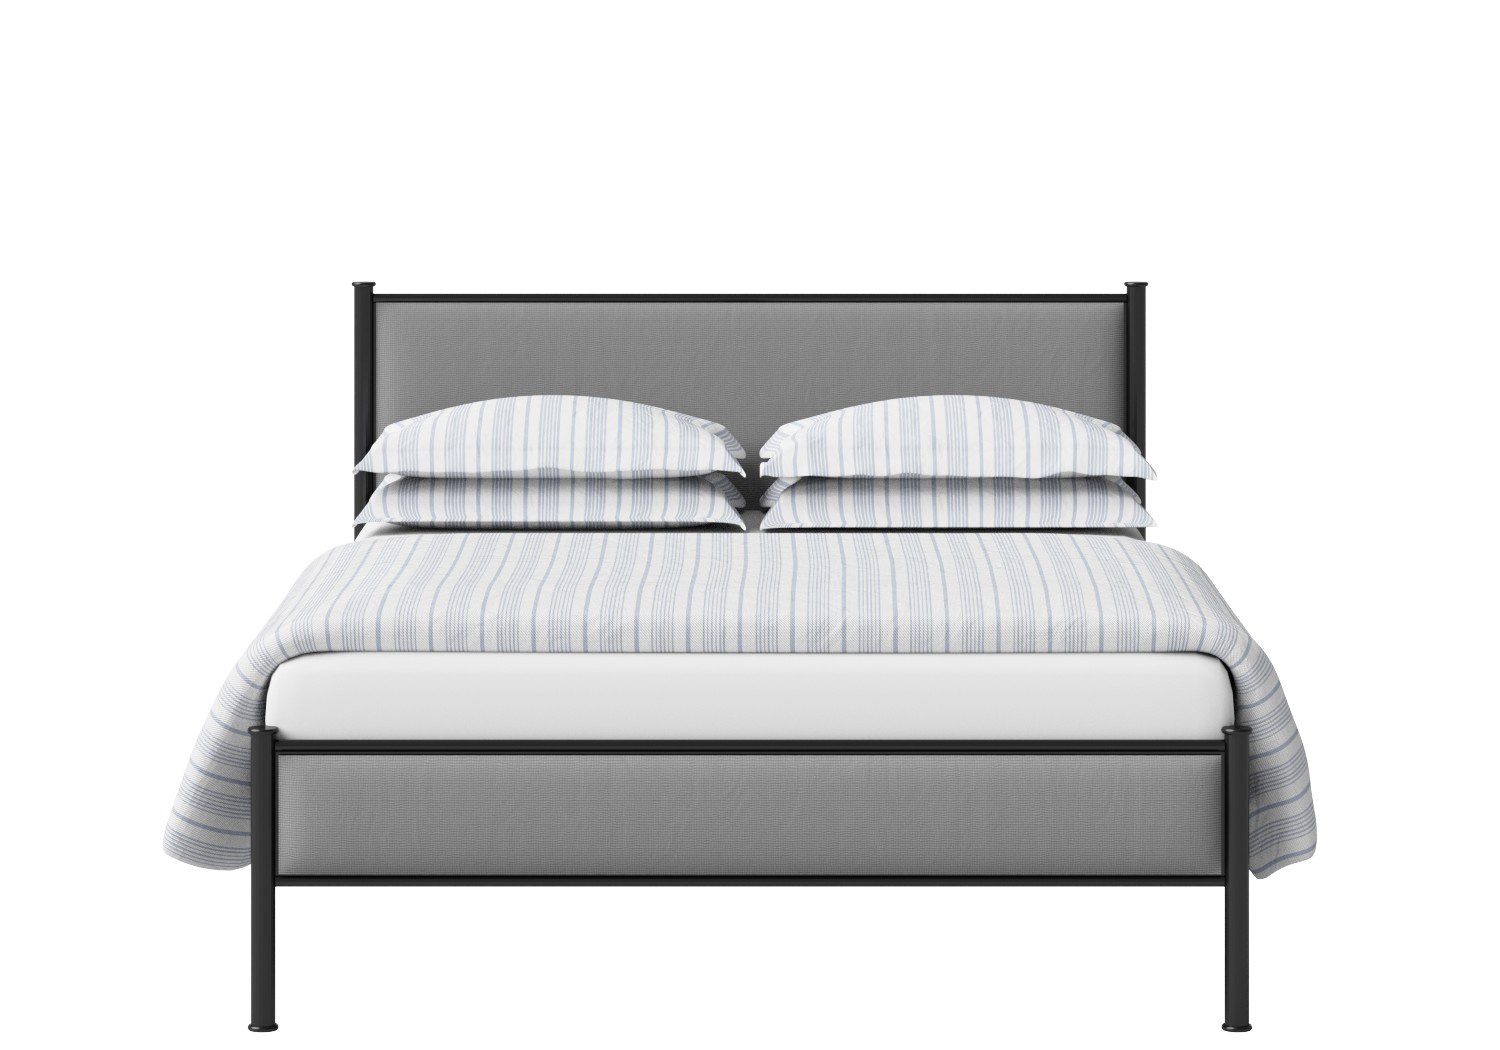 Brest Iron/Metal Upholstered Bed in Satin Black with Grey Fabric